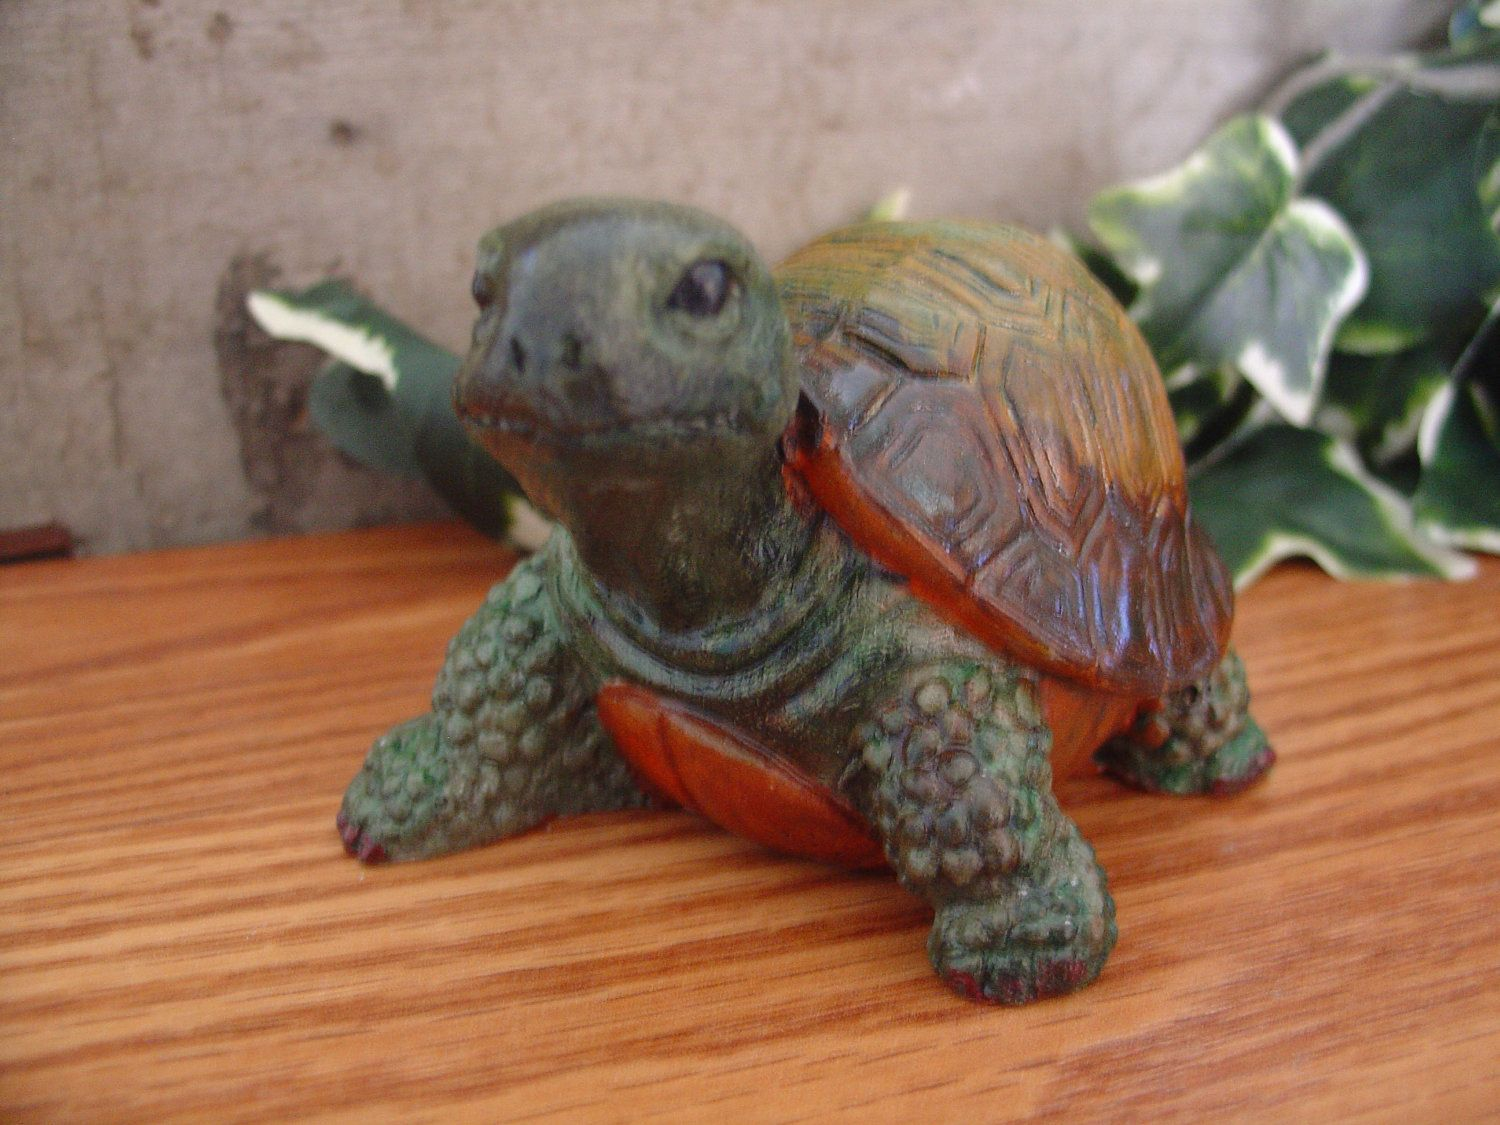 Turtle cement statue figurine indoor outdoor by xson on etsy